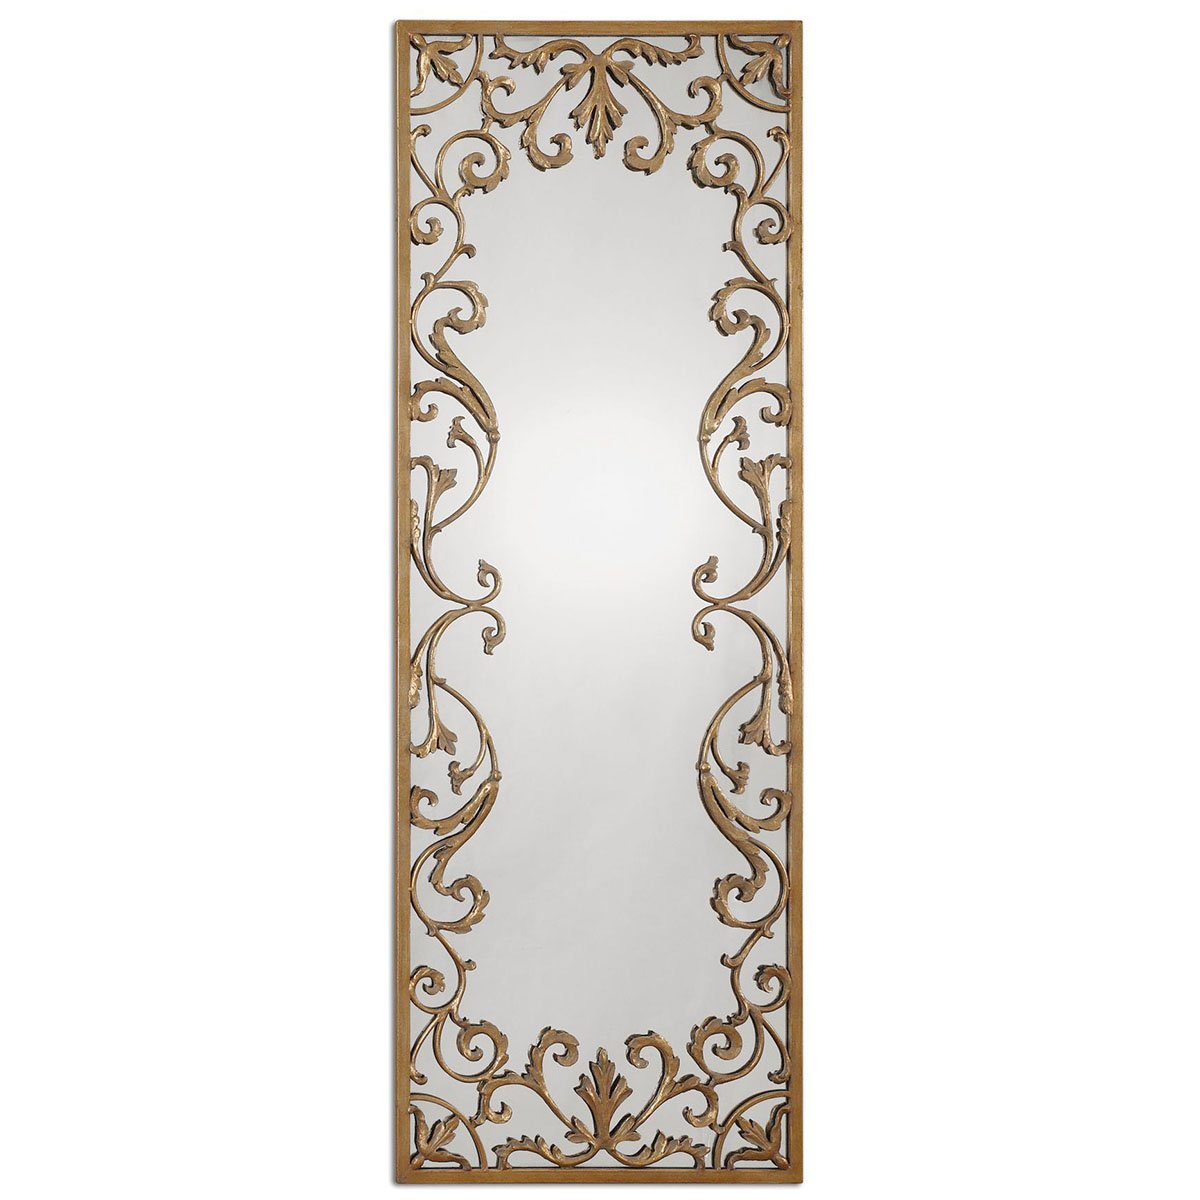 Amazon uttermost 12814 apricena decorative mirror gold home amazon uttermost 12814 apricena decorative mirror gold home kitchen amipublicfo Choice Image